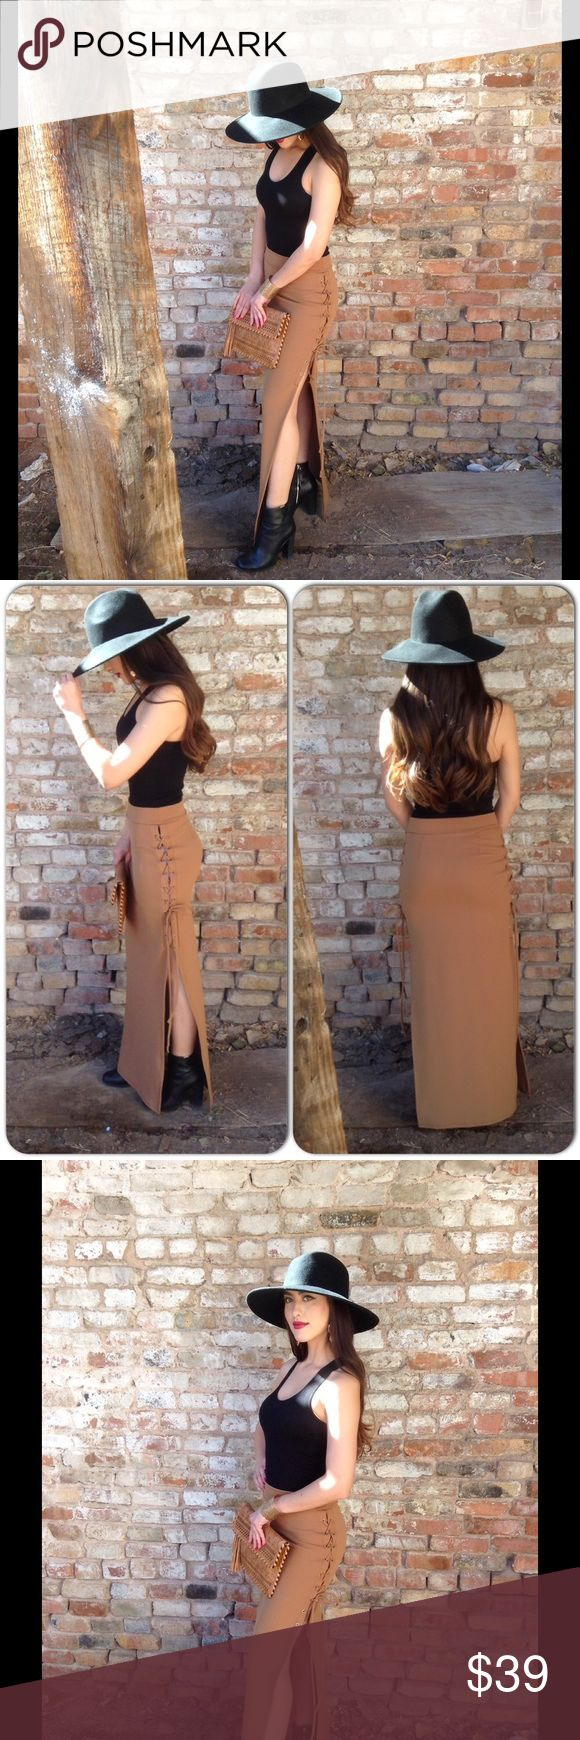 Maxi Bohemian Skirt-Last One *New listing 1-29*This comfortable and bohemian style skirt features elastic waist band and side ties. It's up to you how much you want to tie. Color is perfect for different tops and looks. 95% Polyester, 5% Spandex (This closet does not trade) Boutique Skirts Maxi